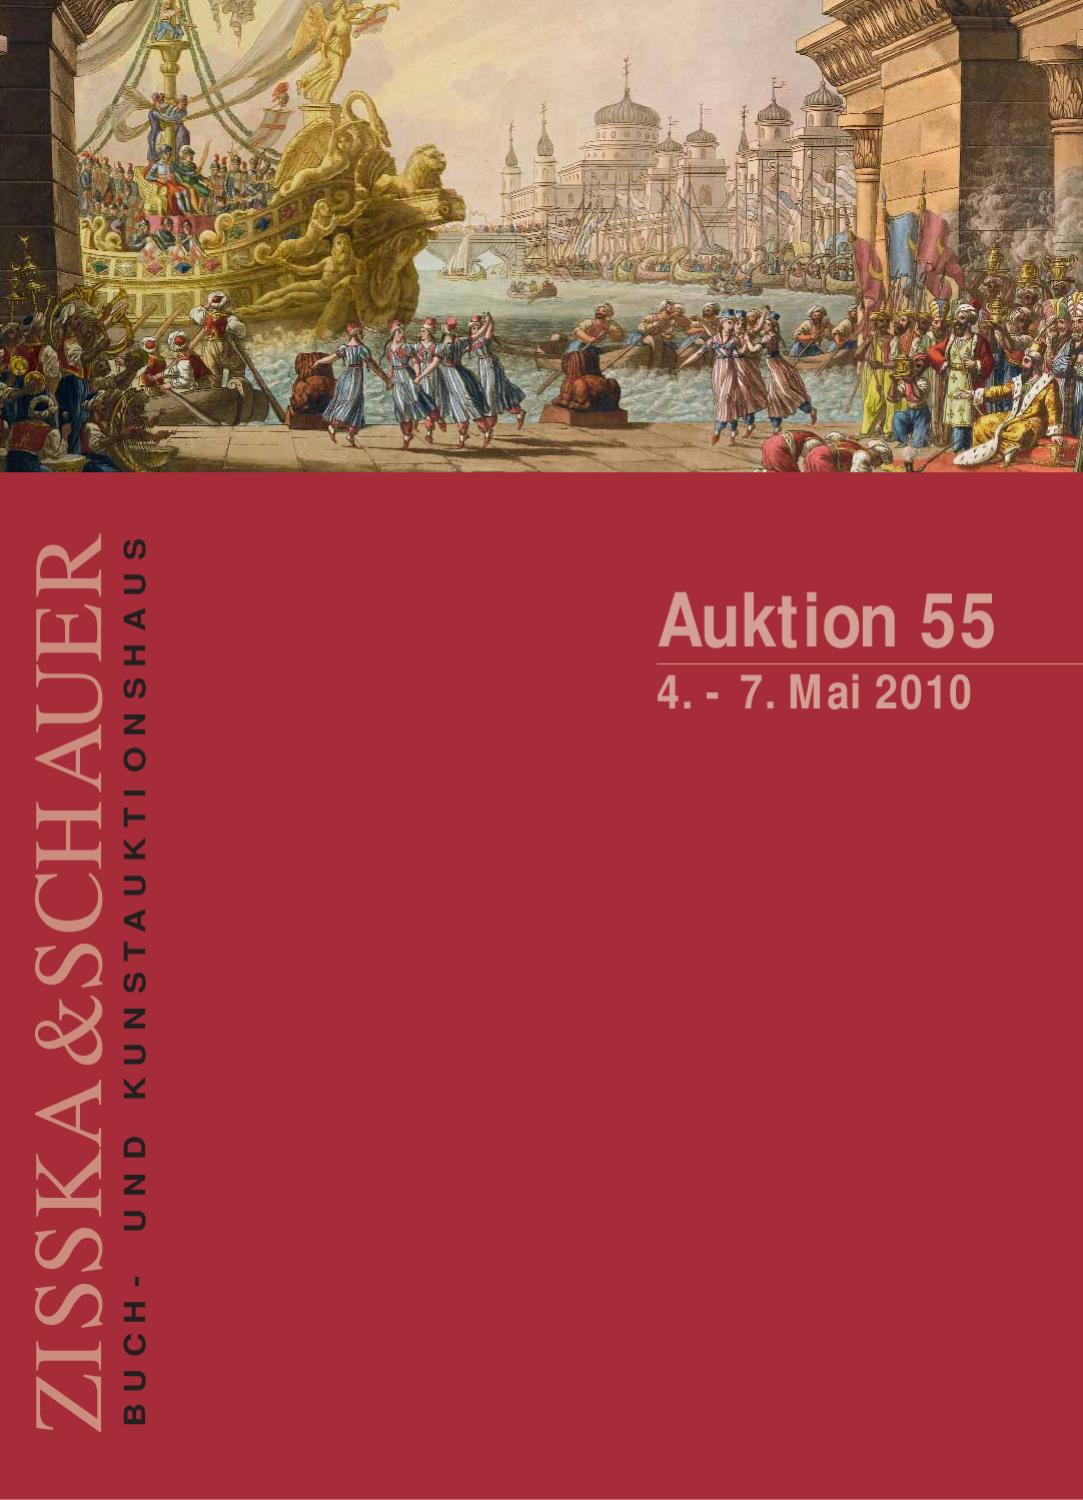 Zisska & Schauer Auktion 55/1 by Friedrich Zisska - issuu